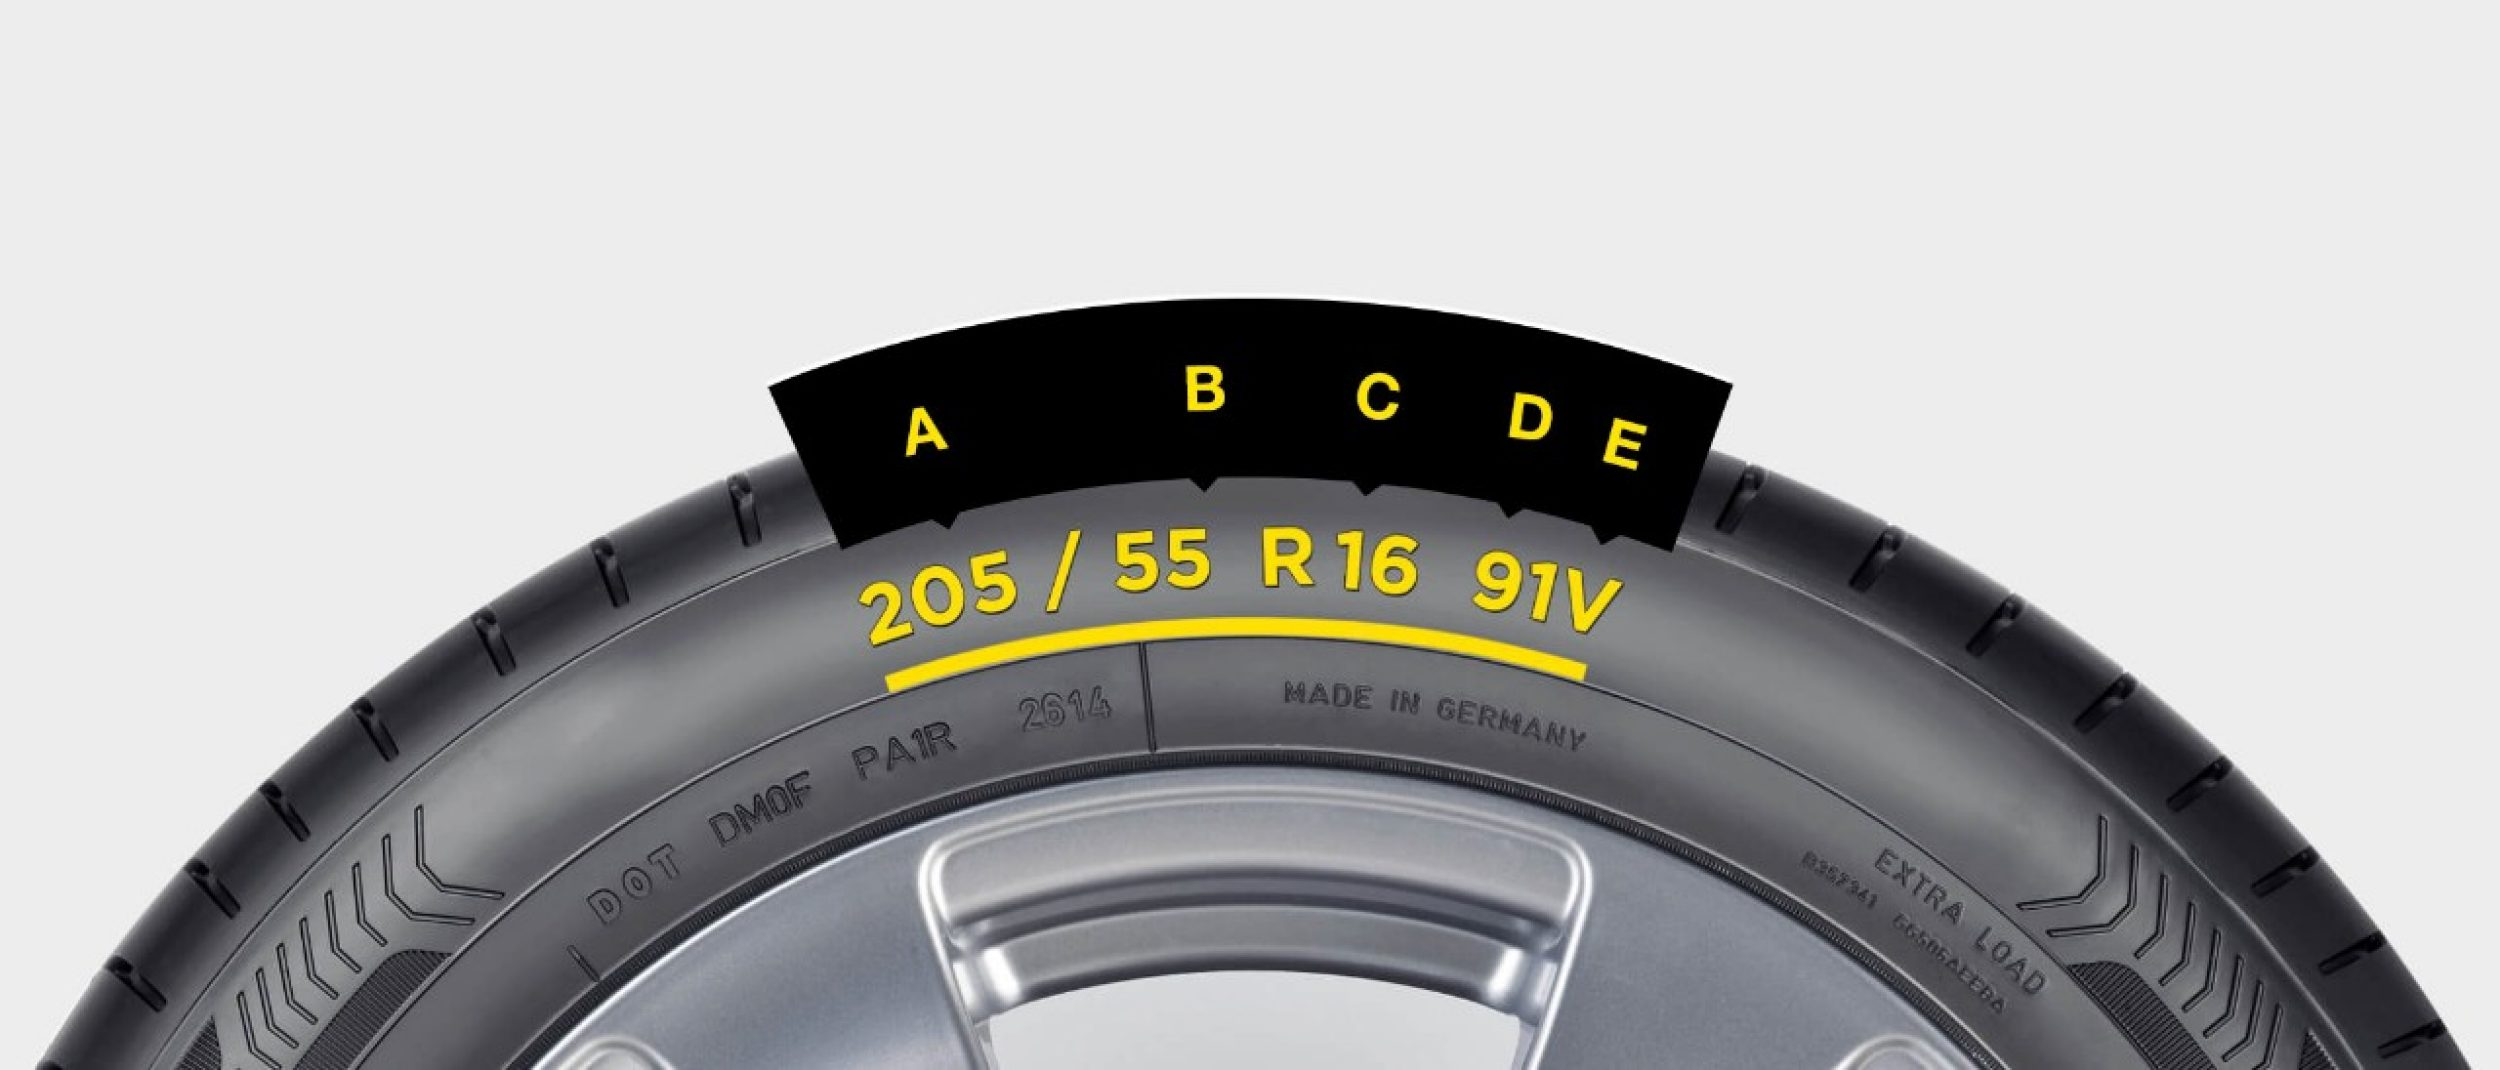 Bush road tyres tyre sizing guide